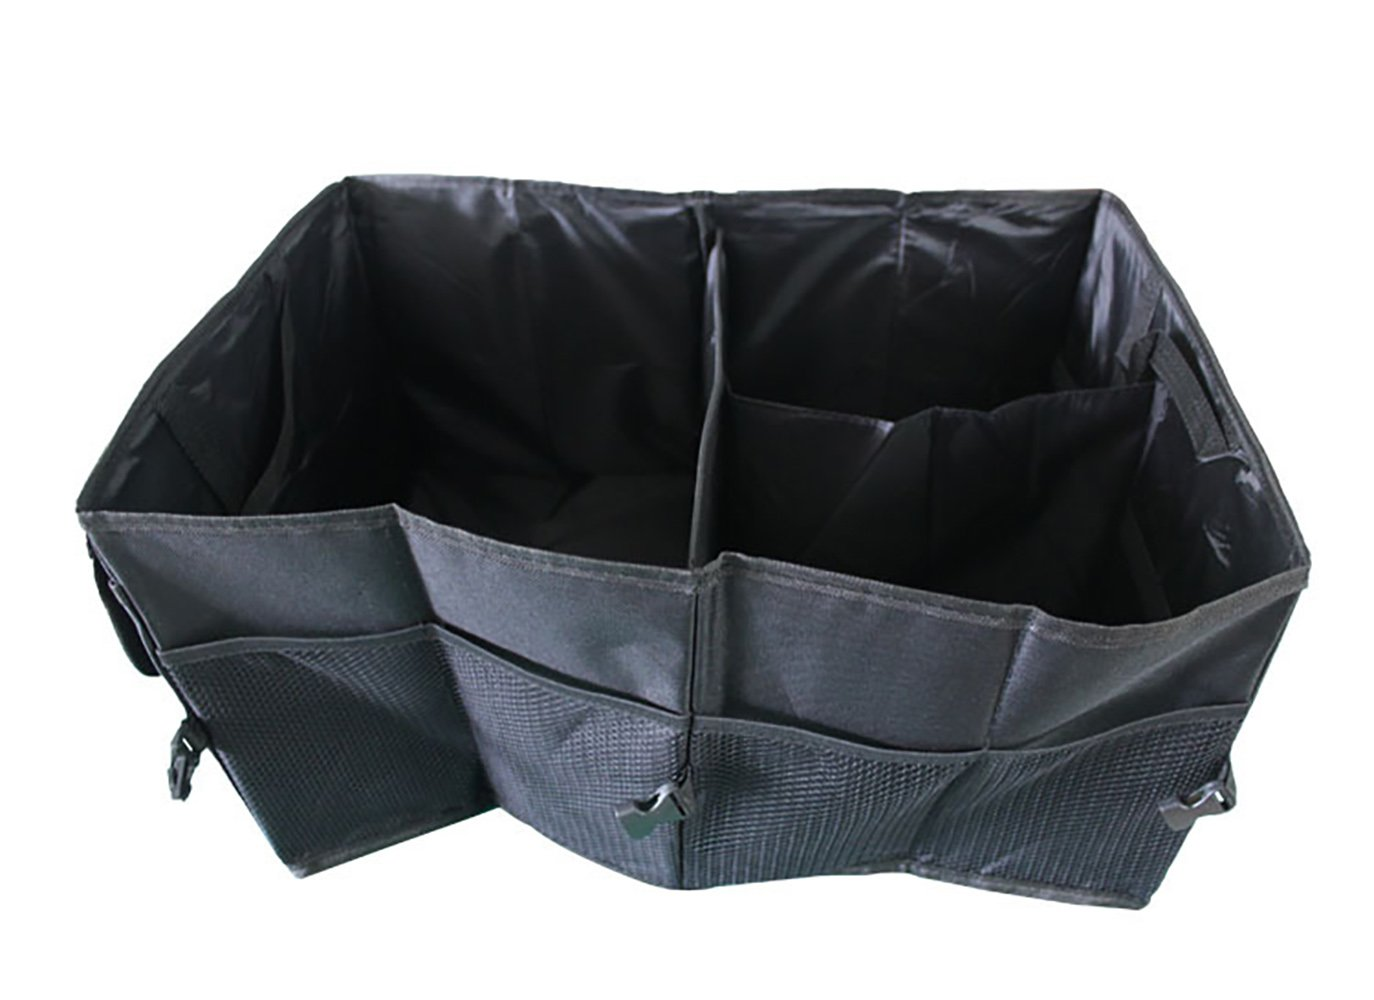 ITTA Foldable Cargo Storage Box with Rope Handles, Portable Multipurpose Organizer Bag Case Basket For Car Trunk Travel Picnic Camping Home Toys (22 x 15.7 x 10.3 inch), Black Yayihe YH-STBA-5626